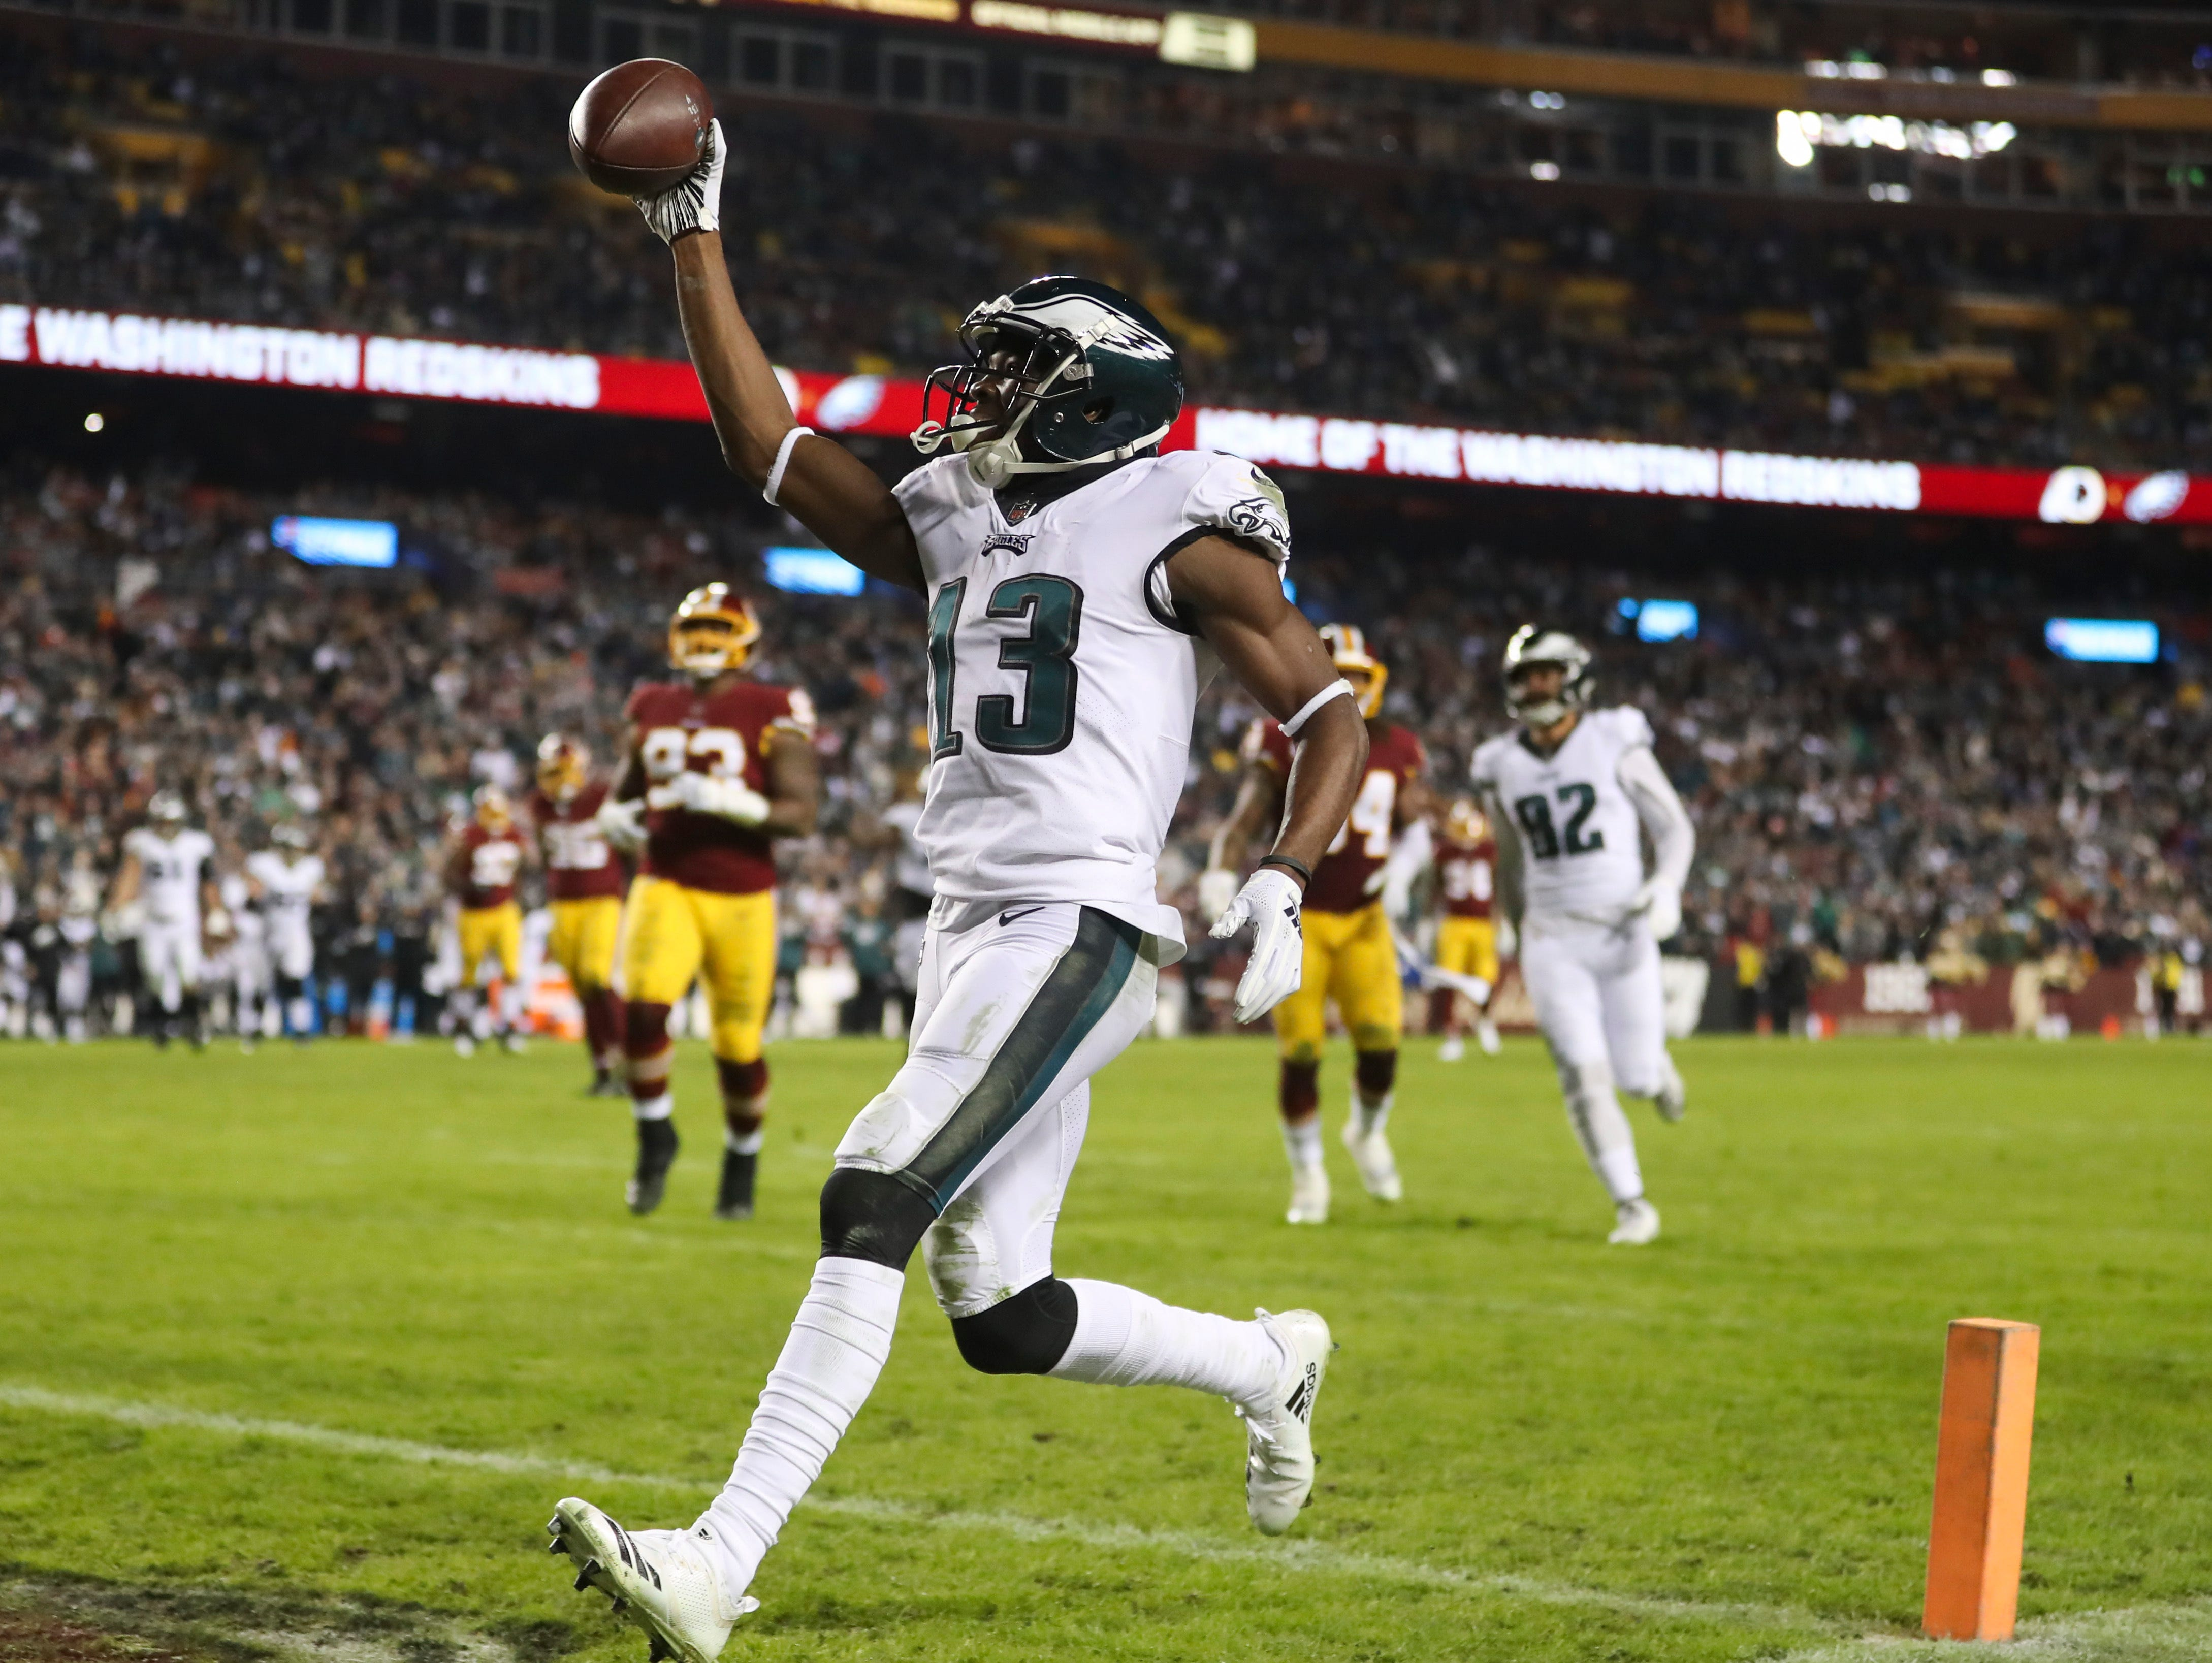 Philadelphia Eagles wide receiver Nelson Agholor (13) celebrates his touchdown during the second half of the NFL football game against the Washington Redskins, Sunday, Dec. 30, 2018, in Landover, Md. (AP Photo/Andrew Harnik)